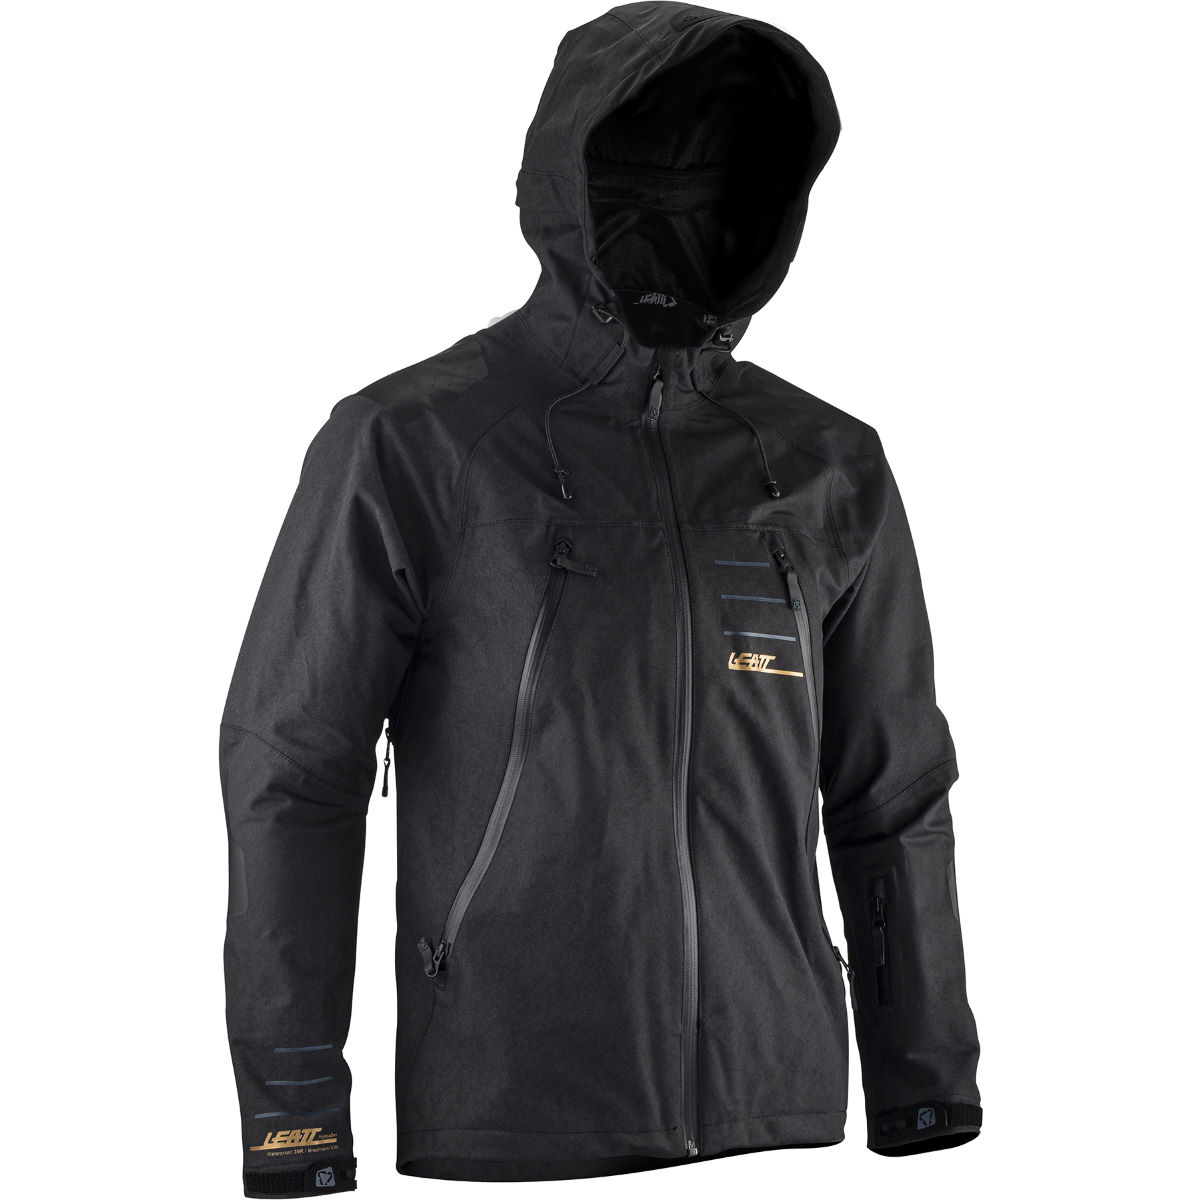 Leatt Leatt MTB 5.0 Jacket   Jackets